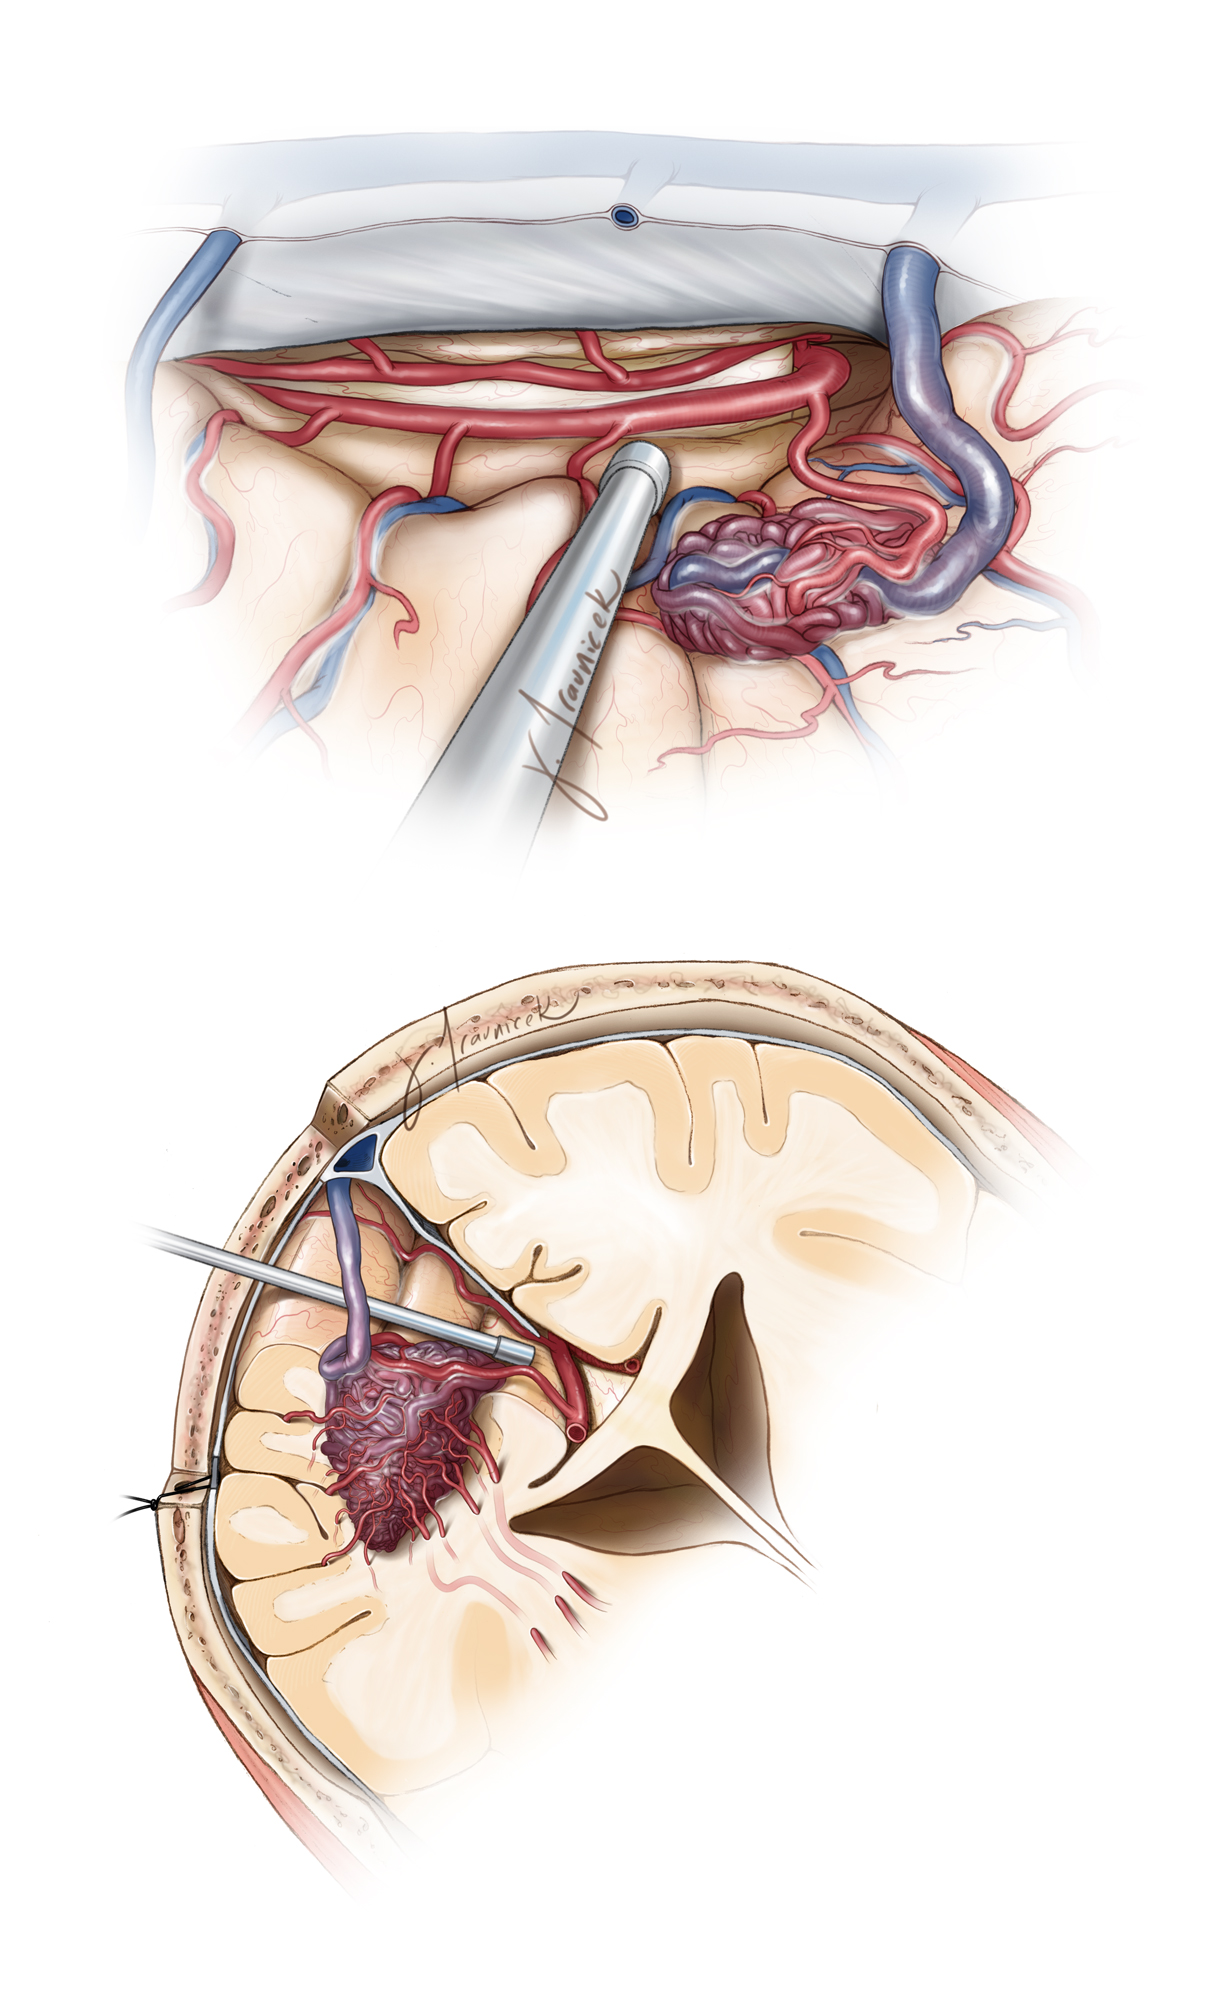 Figure 9: The angioarchitecture of a medial frontal AVM is illustrated. Note the tangential operative working angle toward the surface of the AVM (surgeon's view, top image) and the feeding vessels emerging from the callosomarginal and pericallosal arteries. The bottom sketch emphasizes the location of the inferior deep white matter feeders from the lenticulostriates. These white matter feeders can be especially problematic in large AVMs since they are hiding within the operative blind spot.